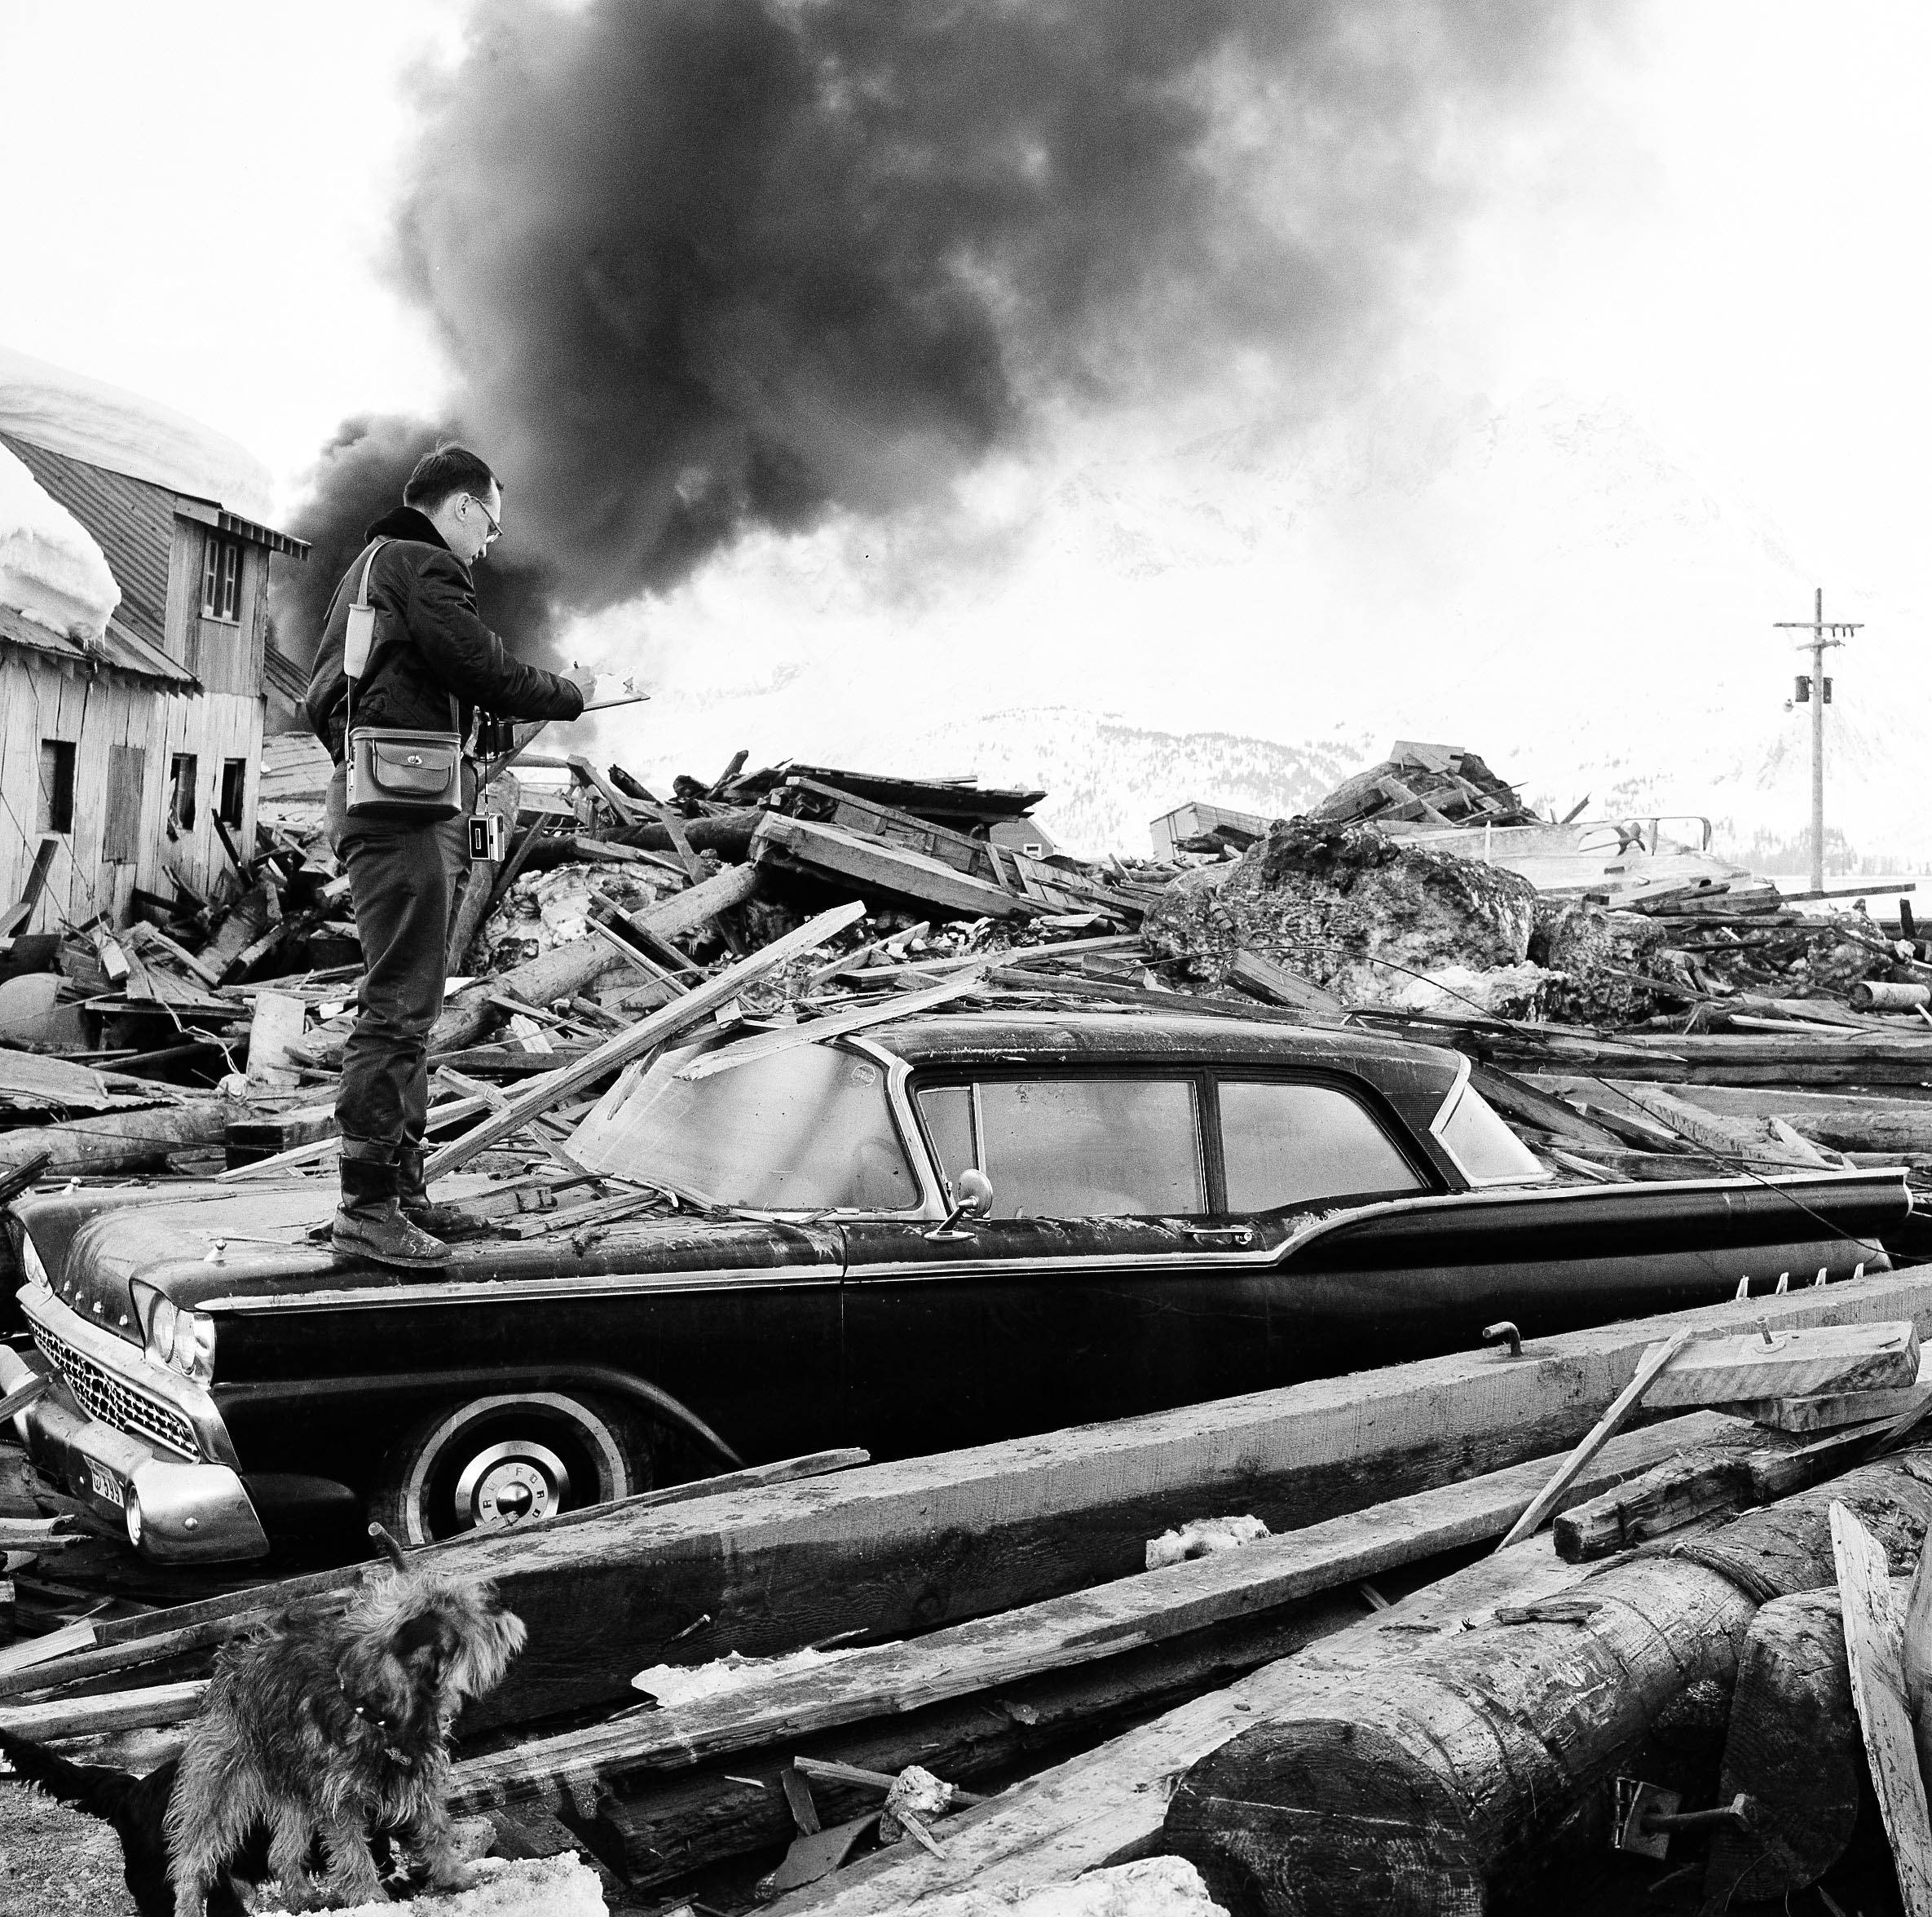 ASSOCIATED PRESS In this March 29, 1964, file photo, a photographer looks over wreckage as smoke rises in the background from burning oil storage tanks at Valdez, Alaska. The city was hit hard by the earthquake that demolished some of Alaska's most picturesque and largest cities.